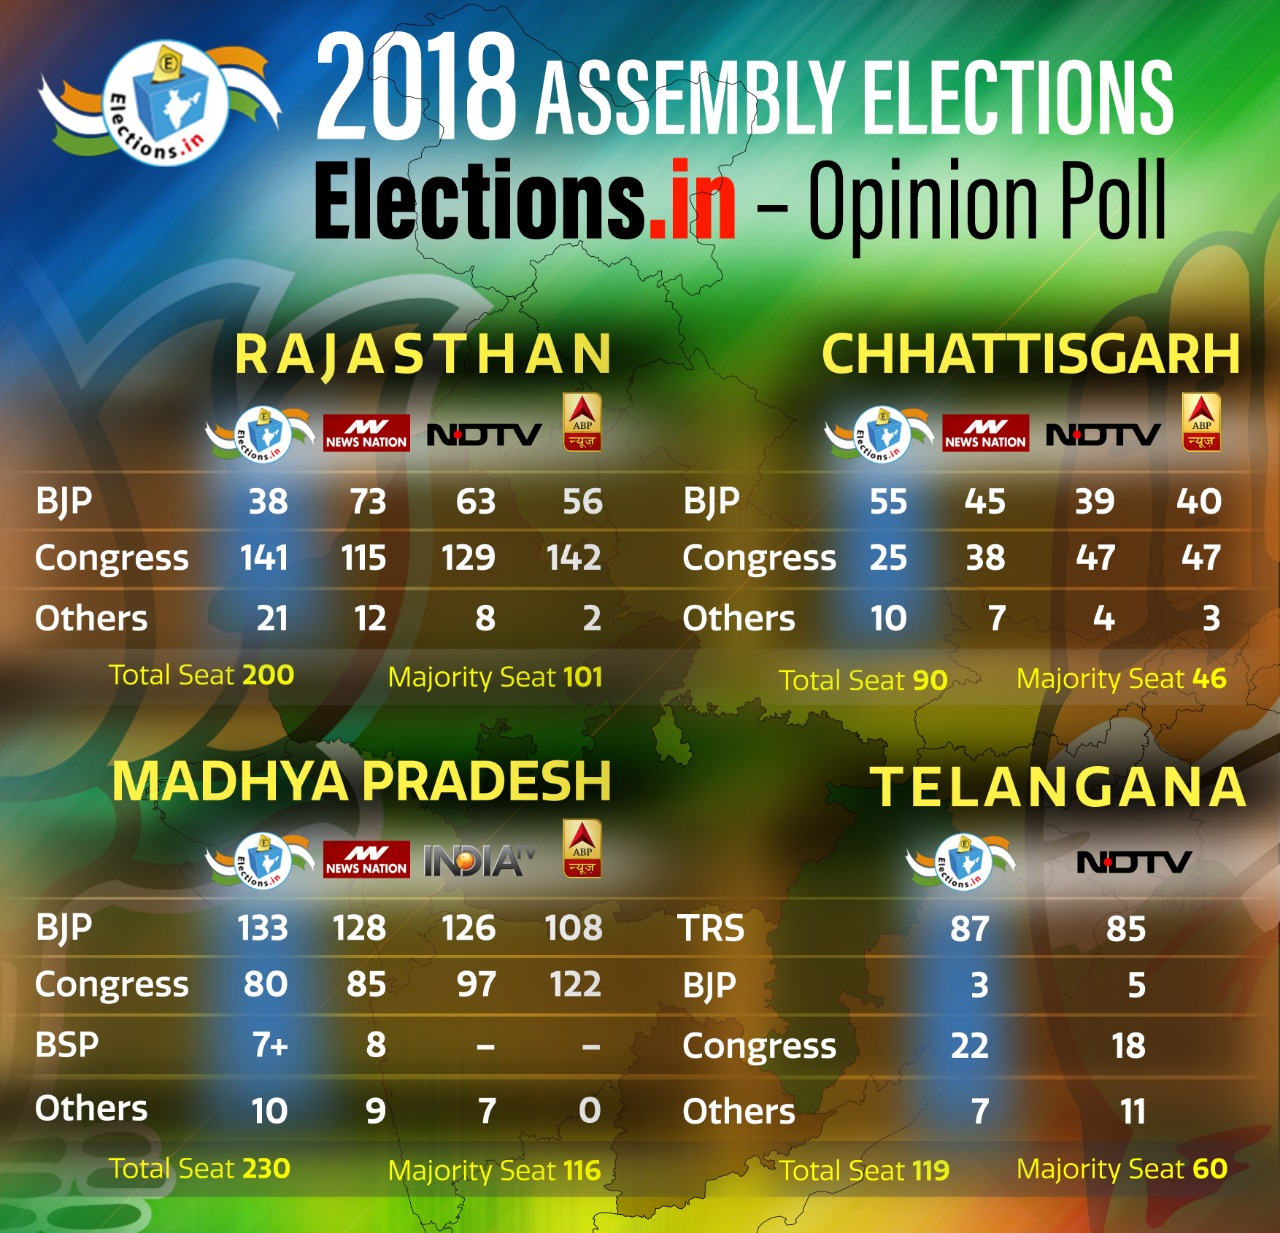 Opinion poll 2018